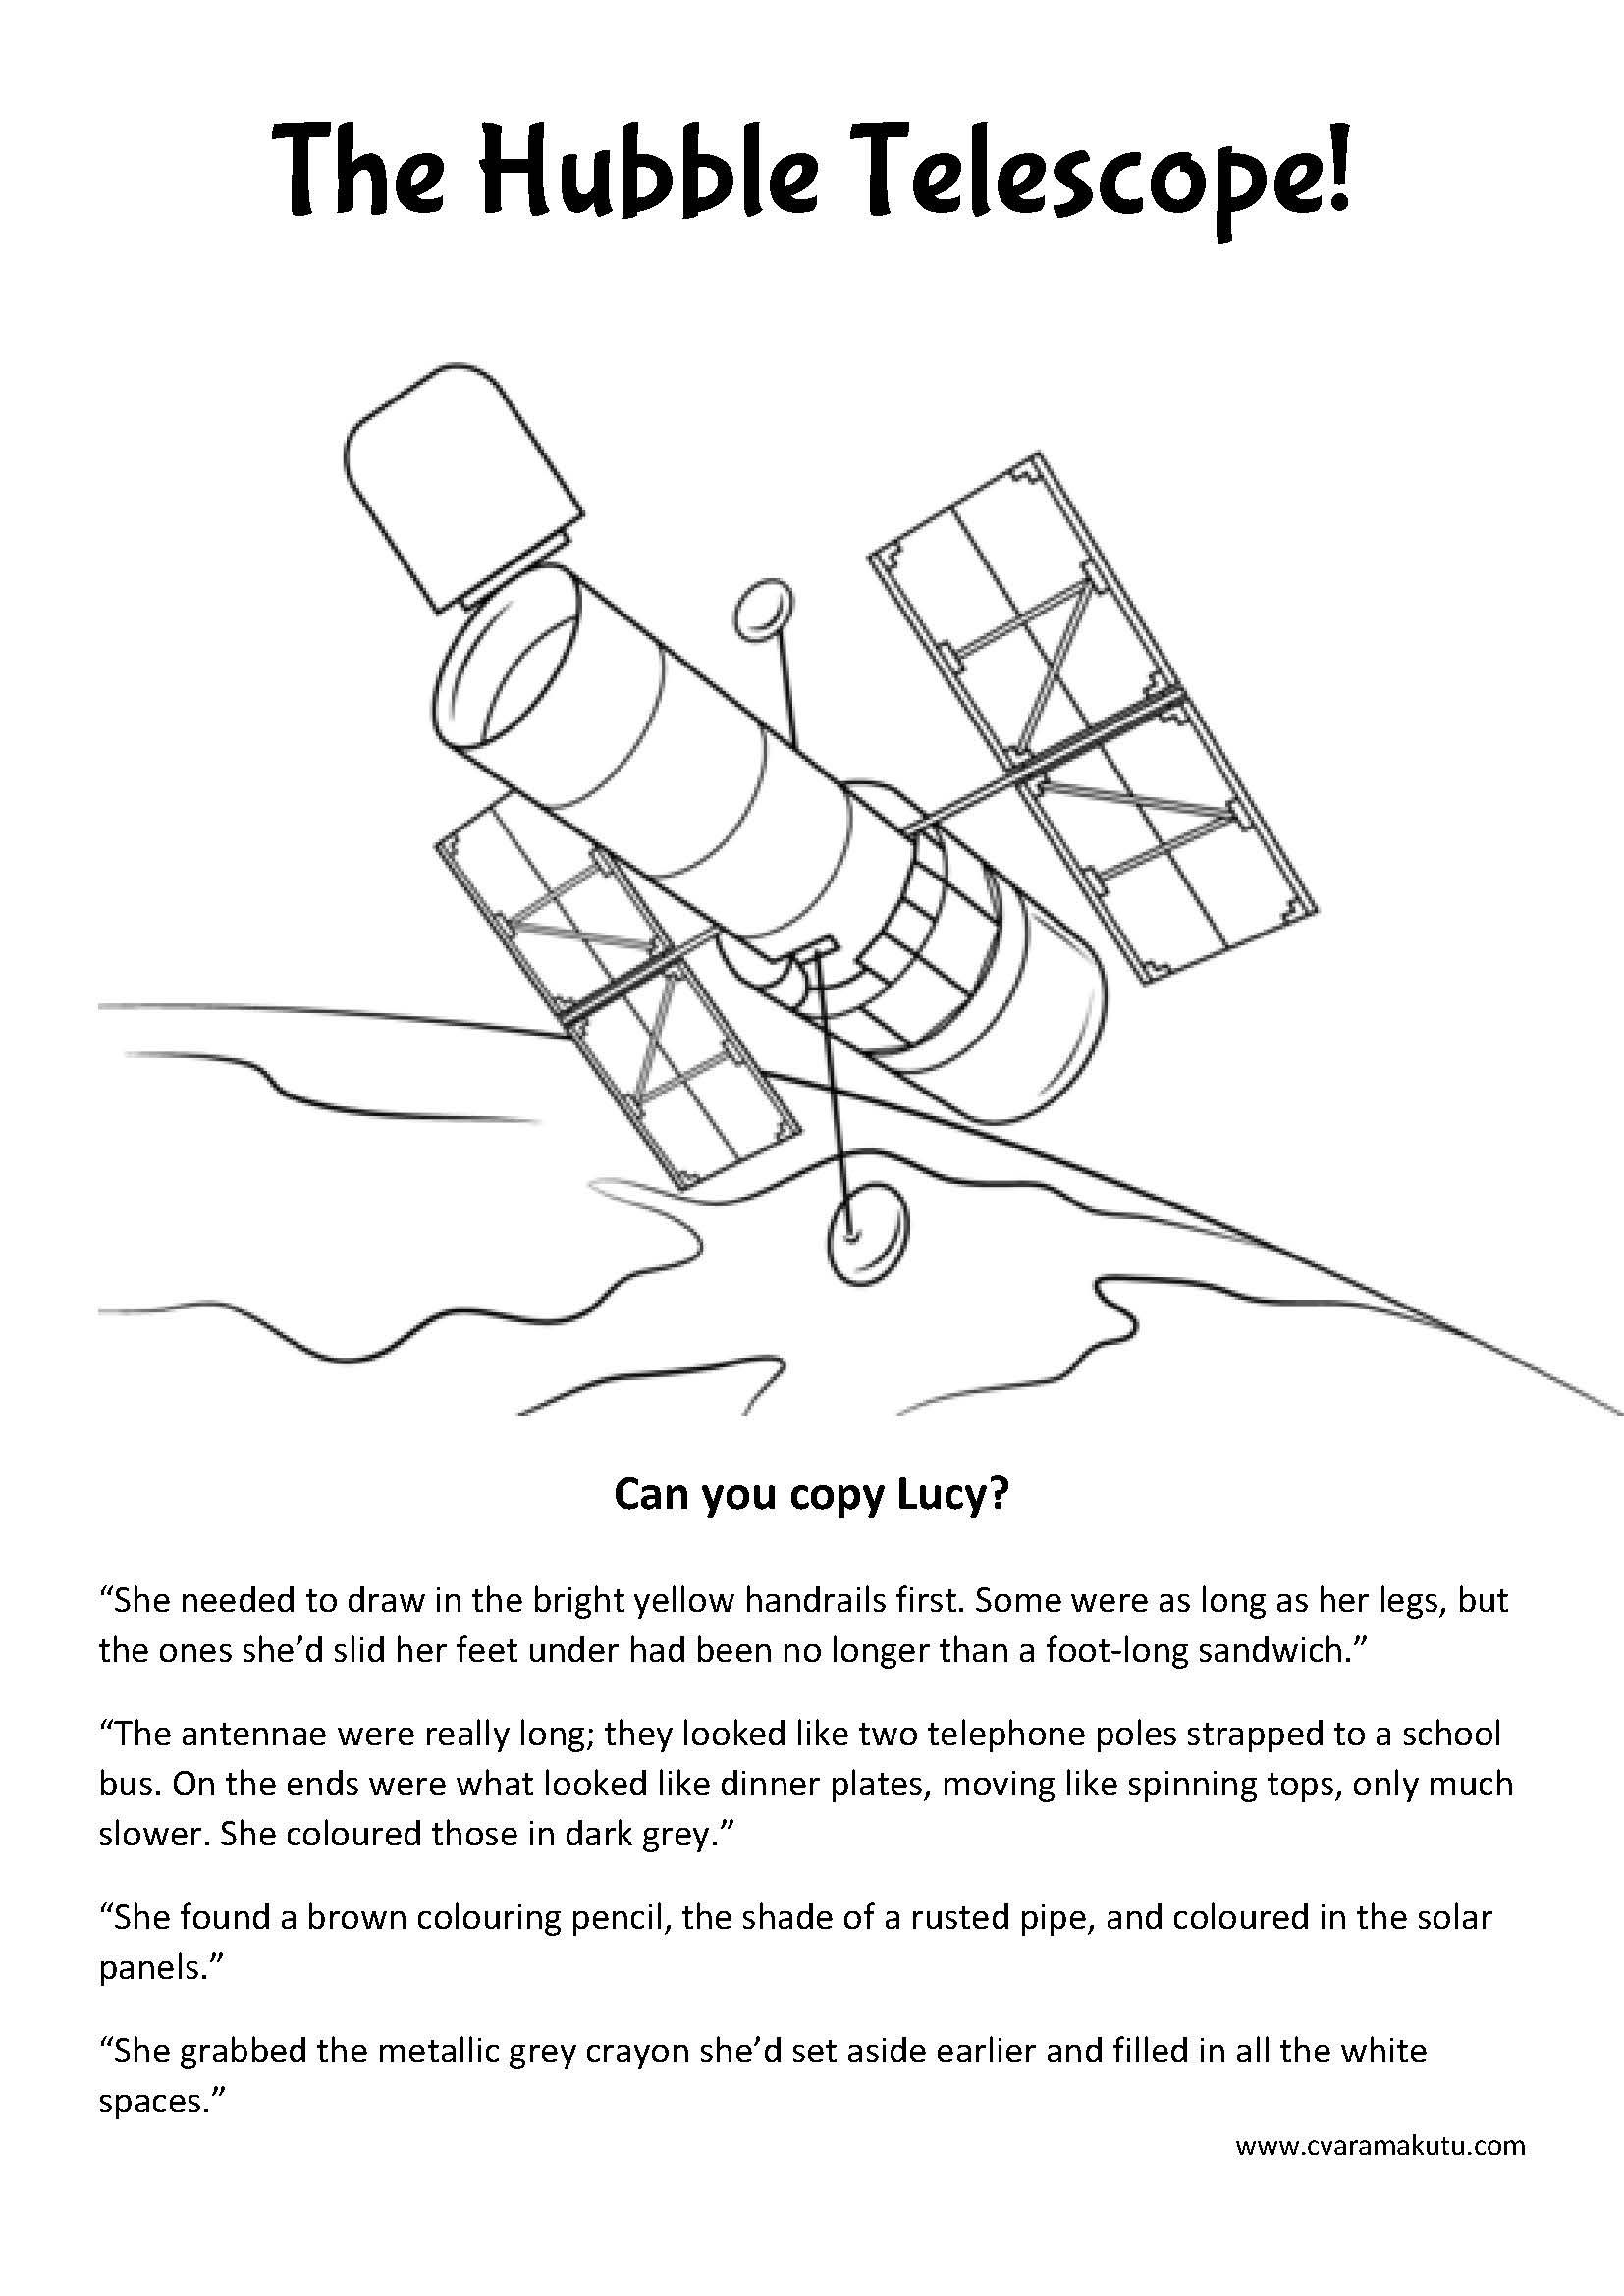 Free The Hubble Telescope Colour Page With Images